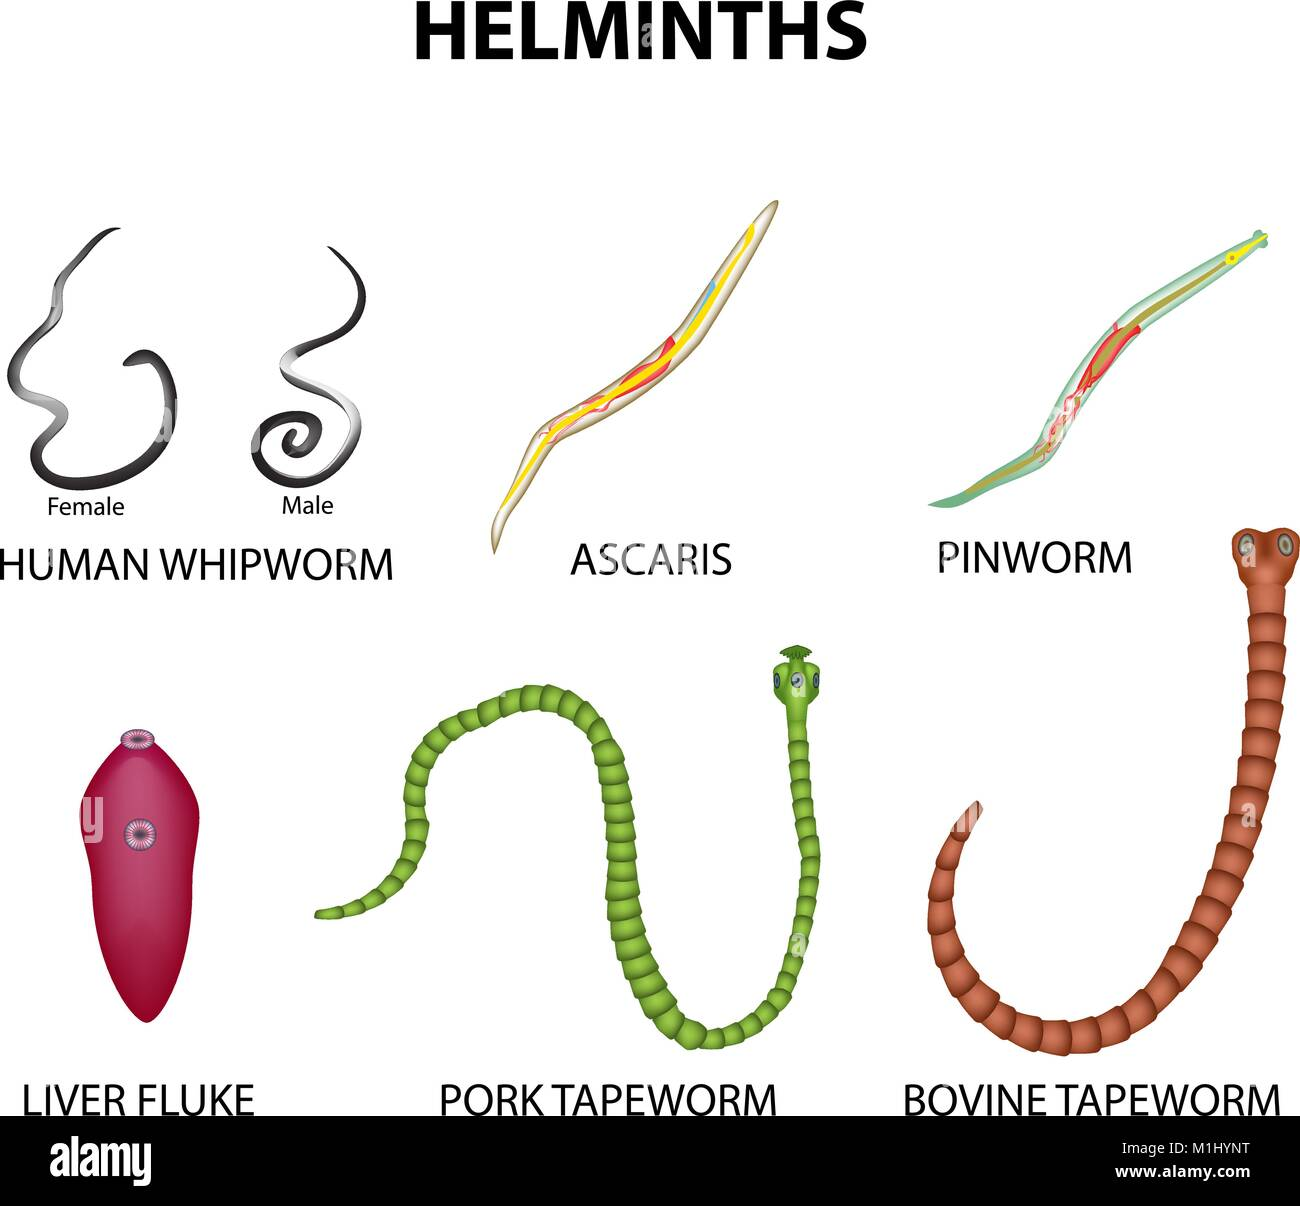 A Set Of Helminths Roundworm Ascaris Pinworms Bovine Tapeworm